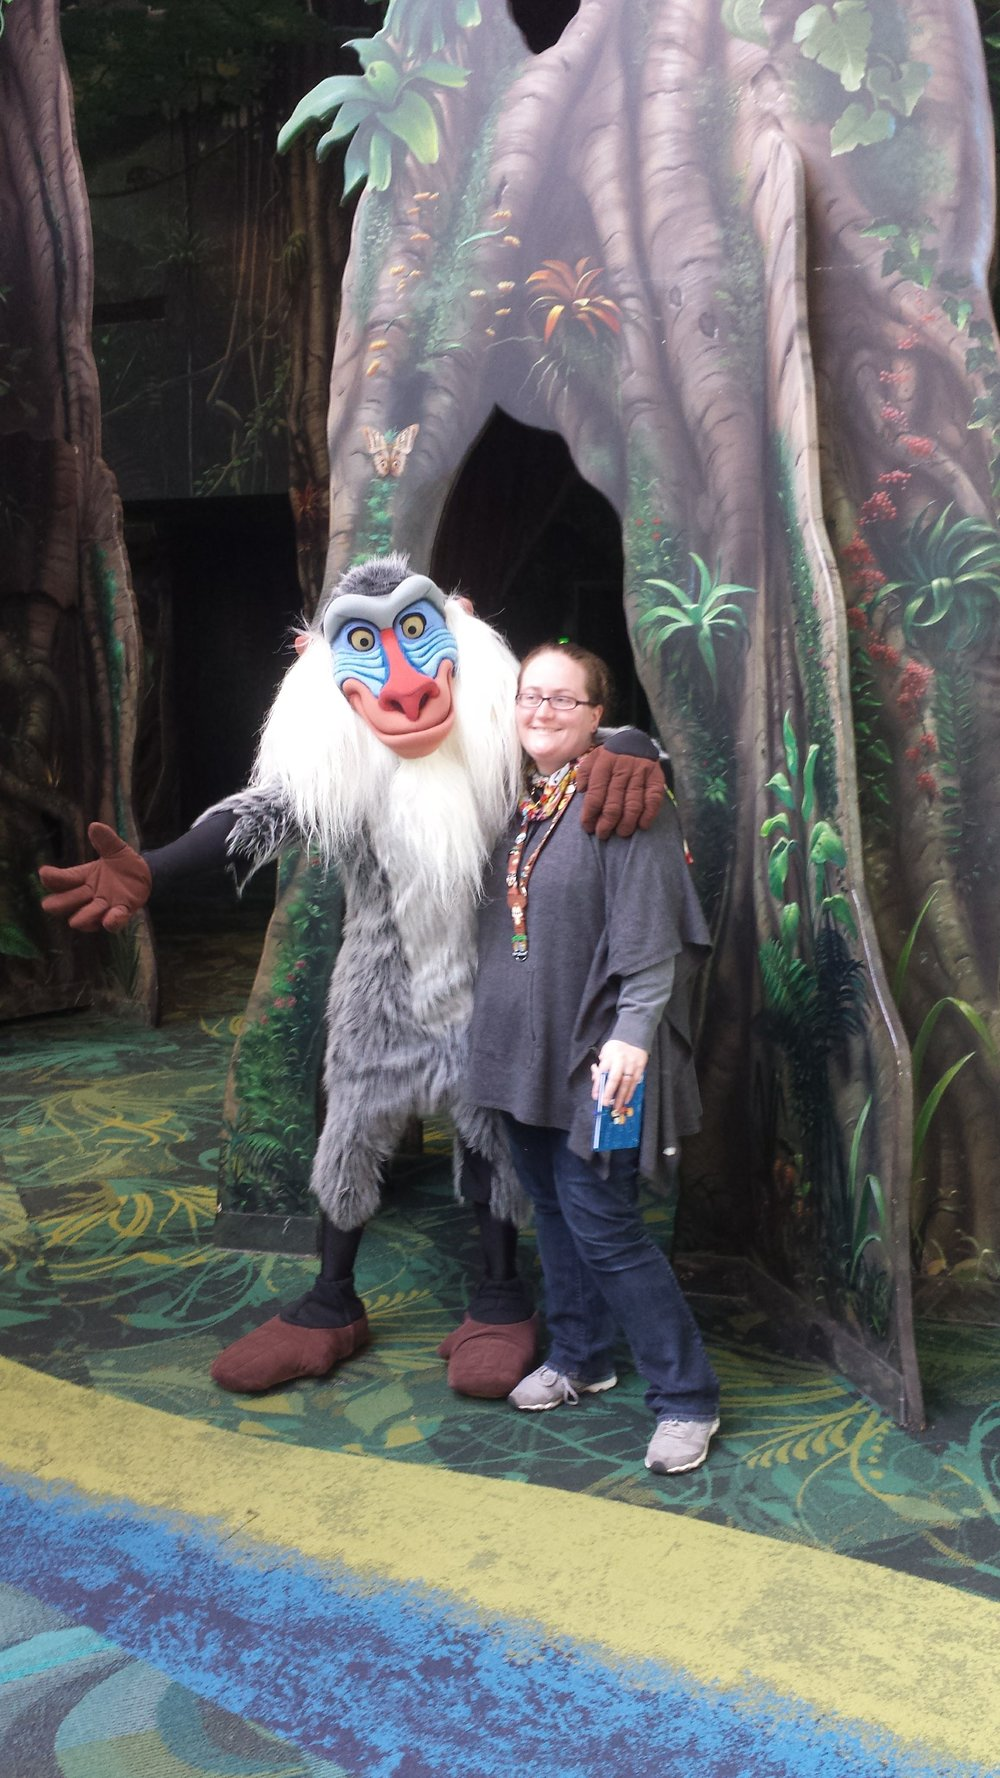 Rafiki had no line this time!